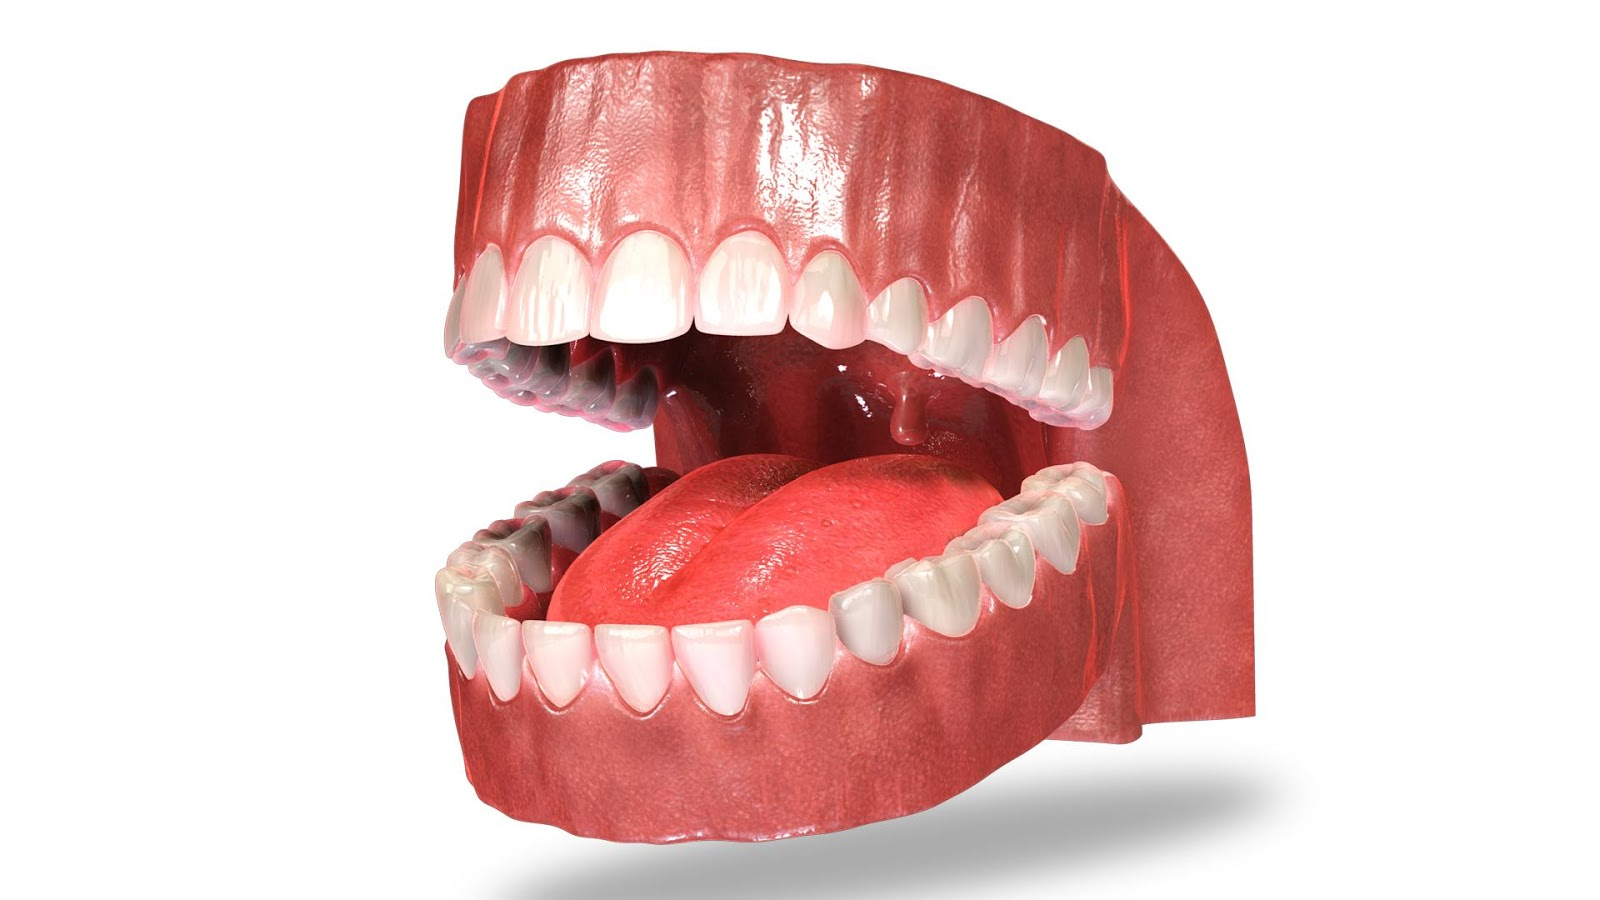 VR Teeth Anatomy - Android Apps on Google Play